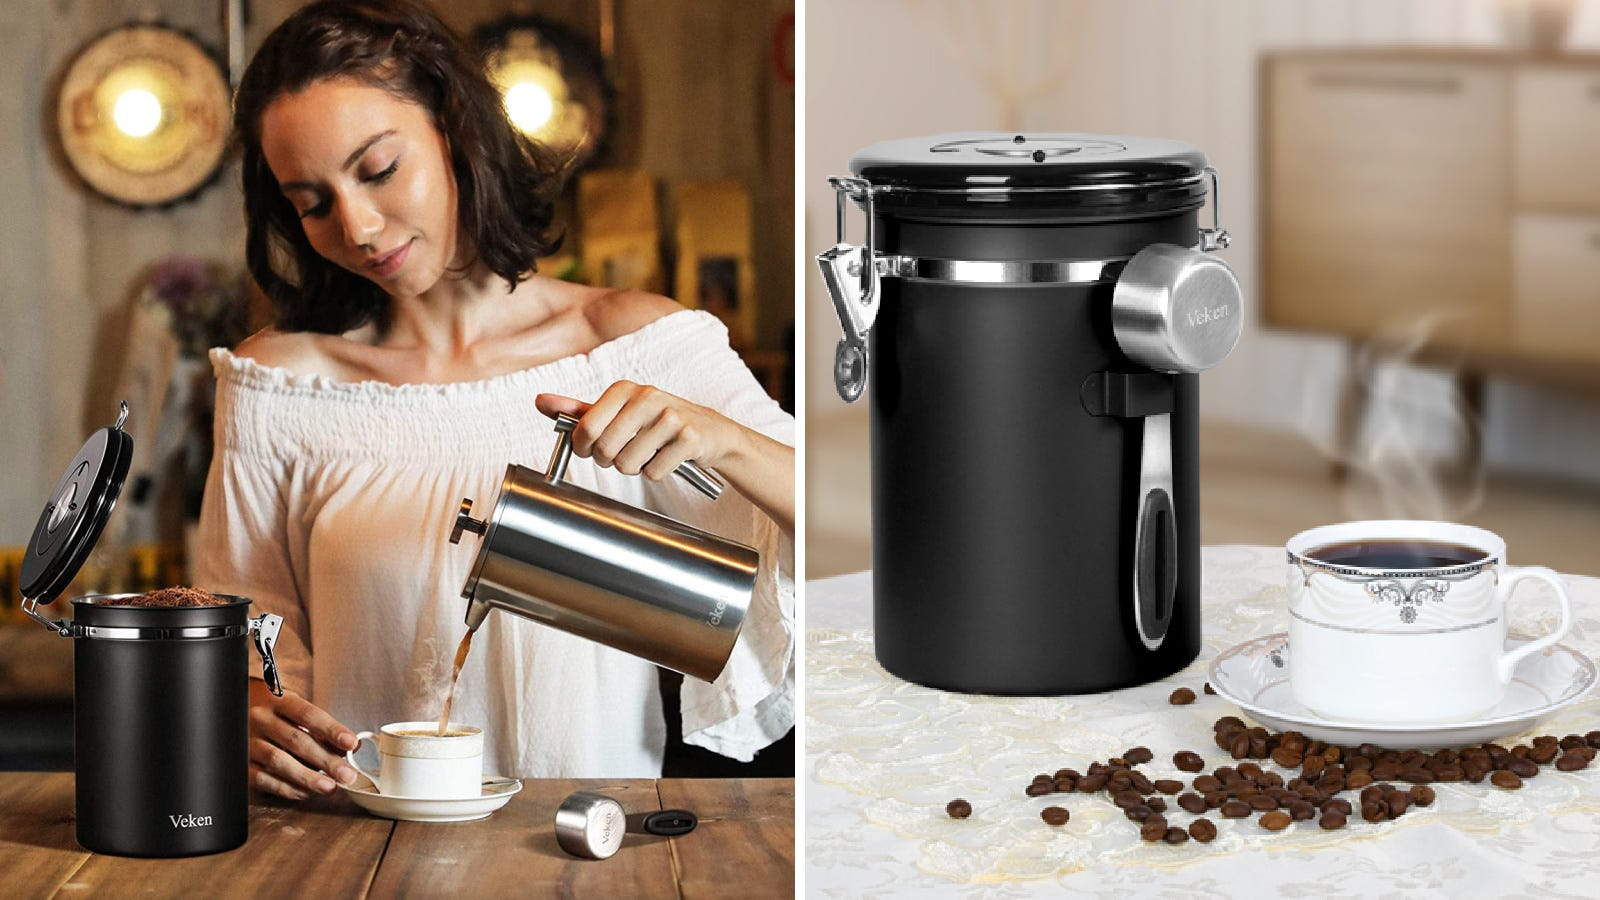 Two images displaying the Veken coffee canister. The left image shows a woman pooring coffee from her Fench press with the Veken canister next to her, and the right image is a freshly poured cup of coffee next to the canister.